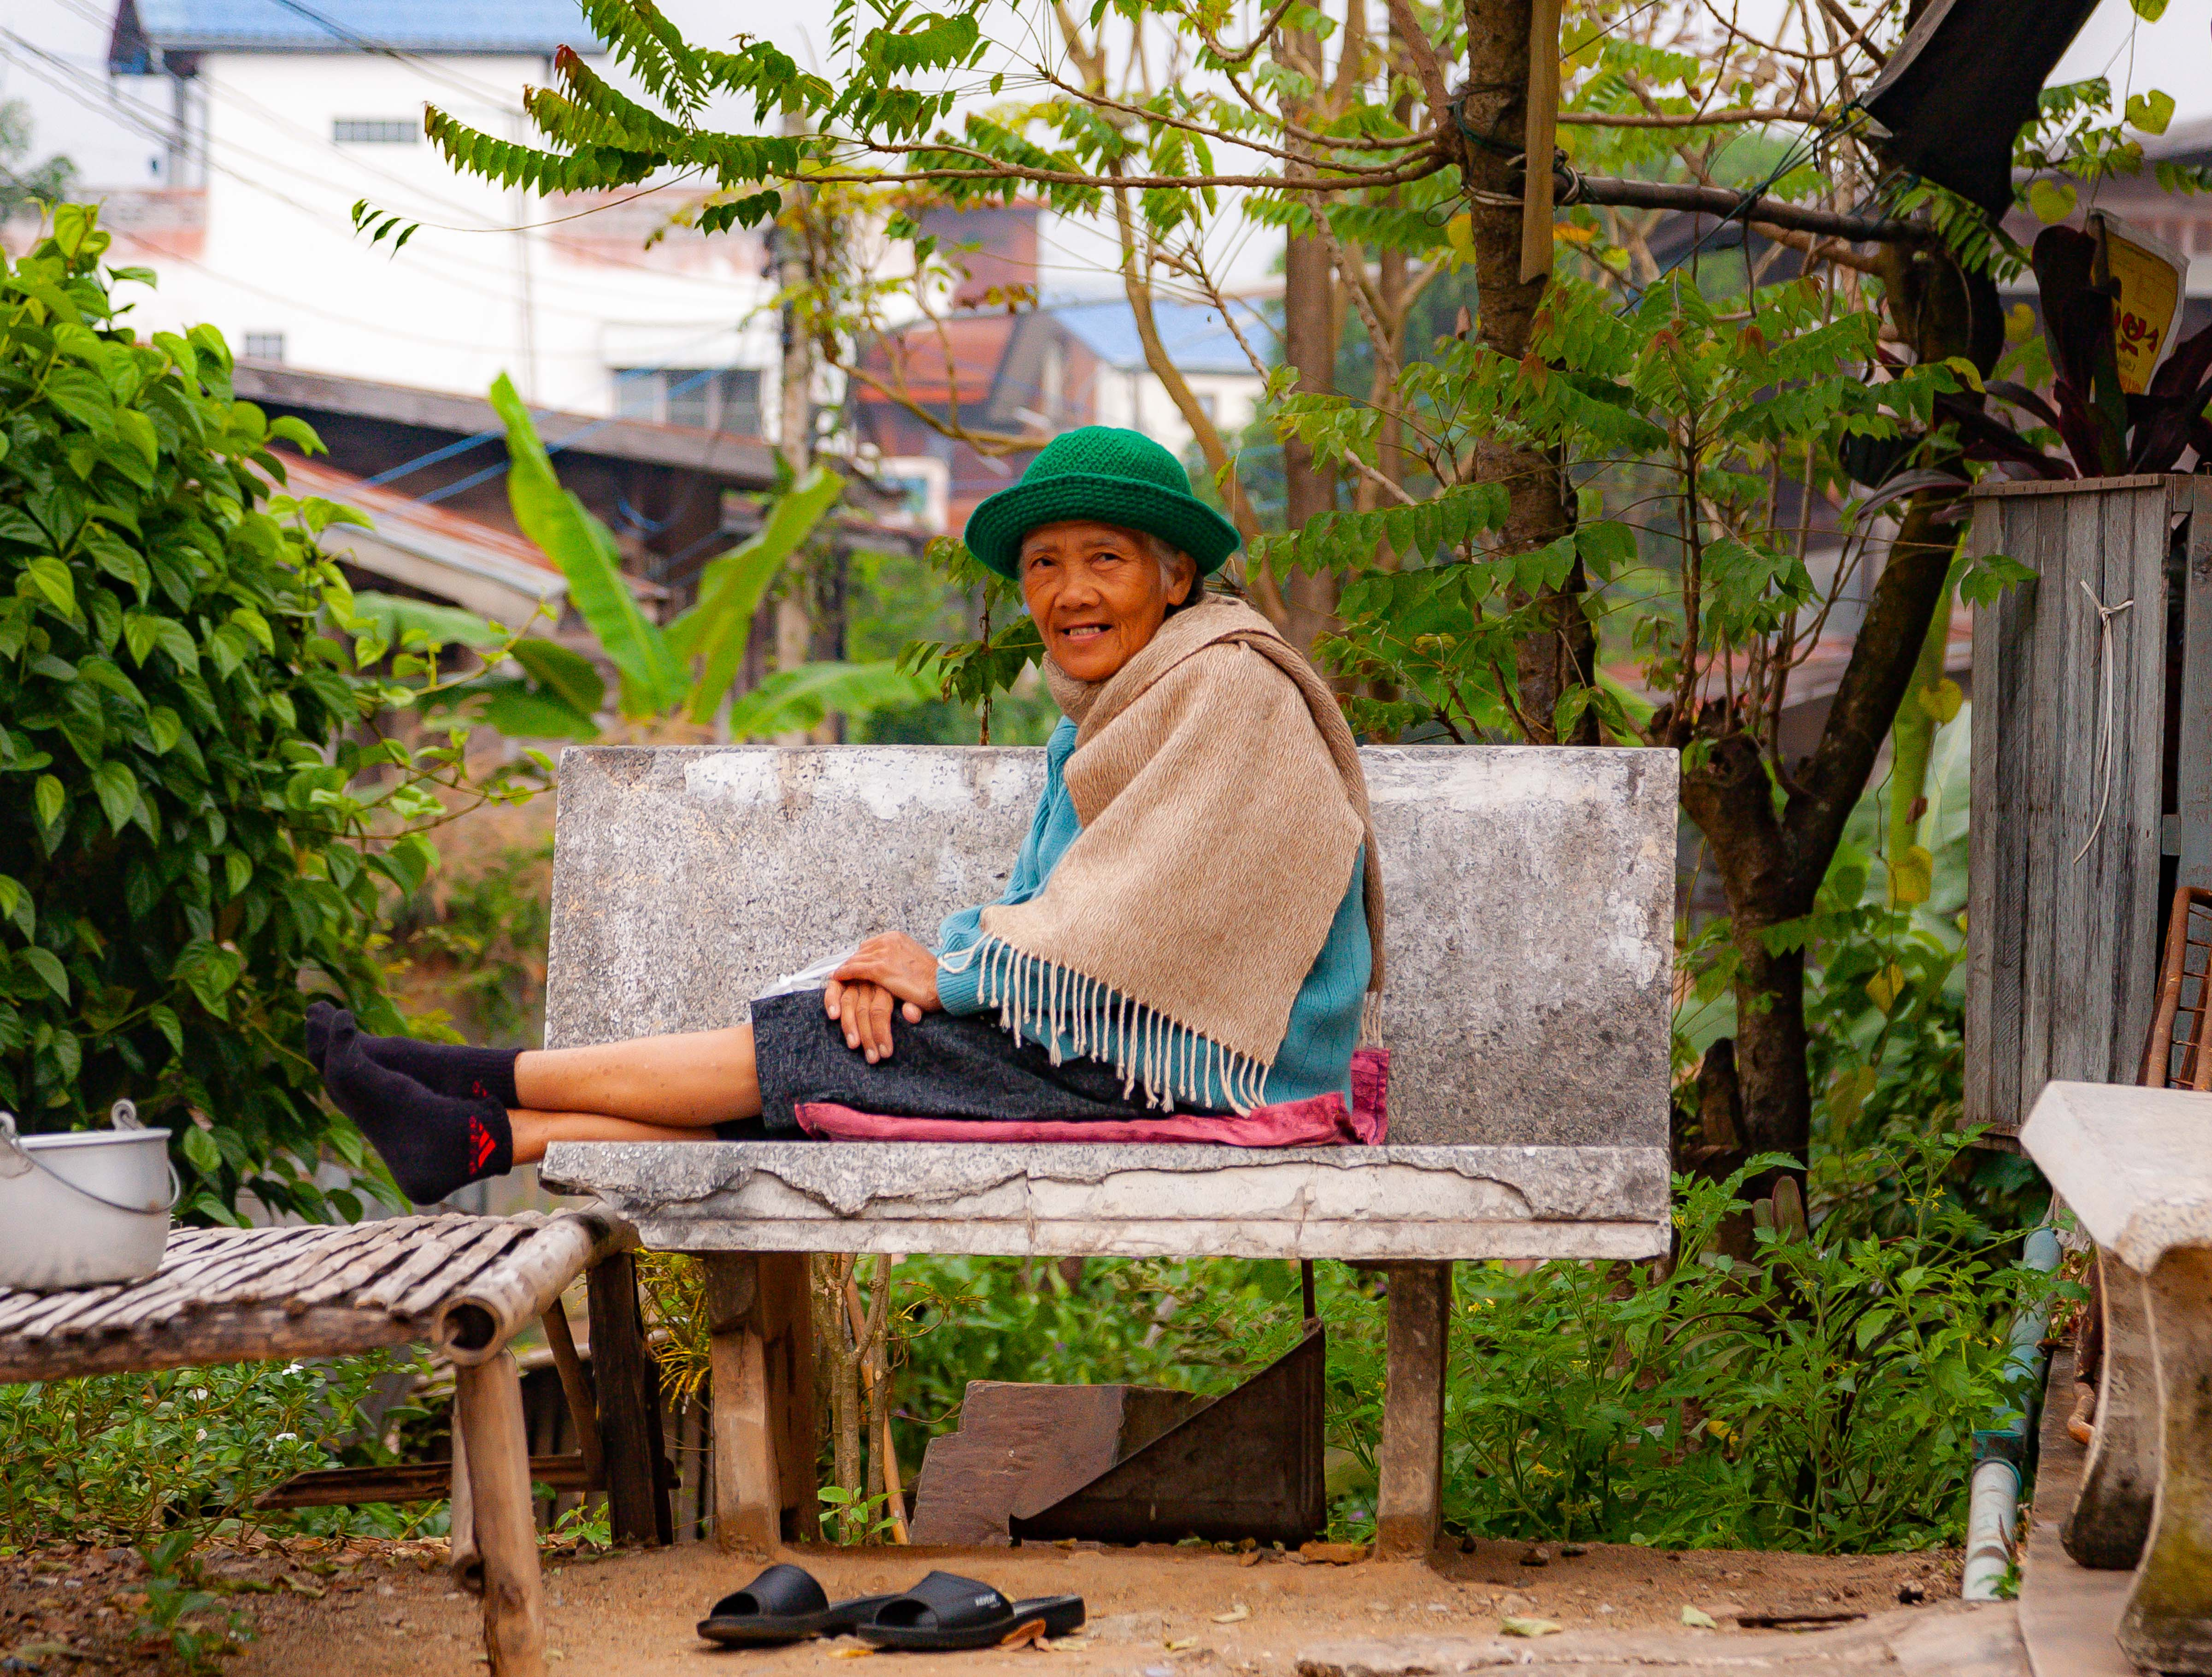 Thailand, Loei Prov, Woman With Green Hat, 2008, IMG 6445